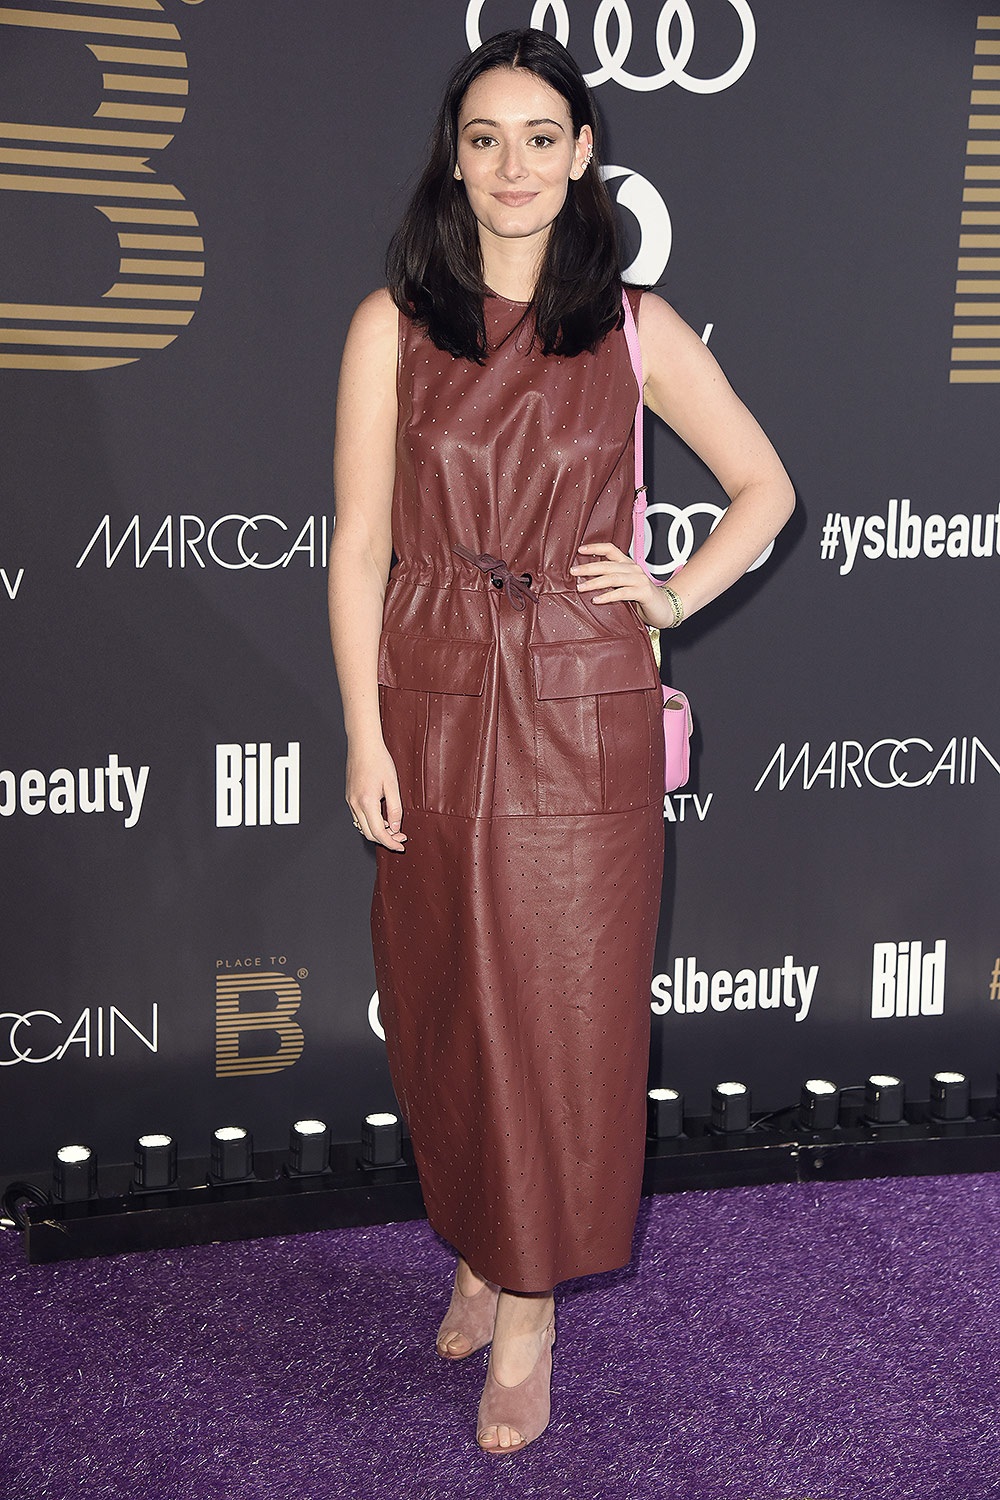 Maria Ehrich attends Place To B Party